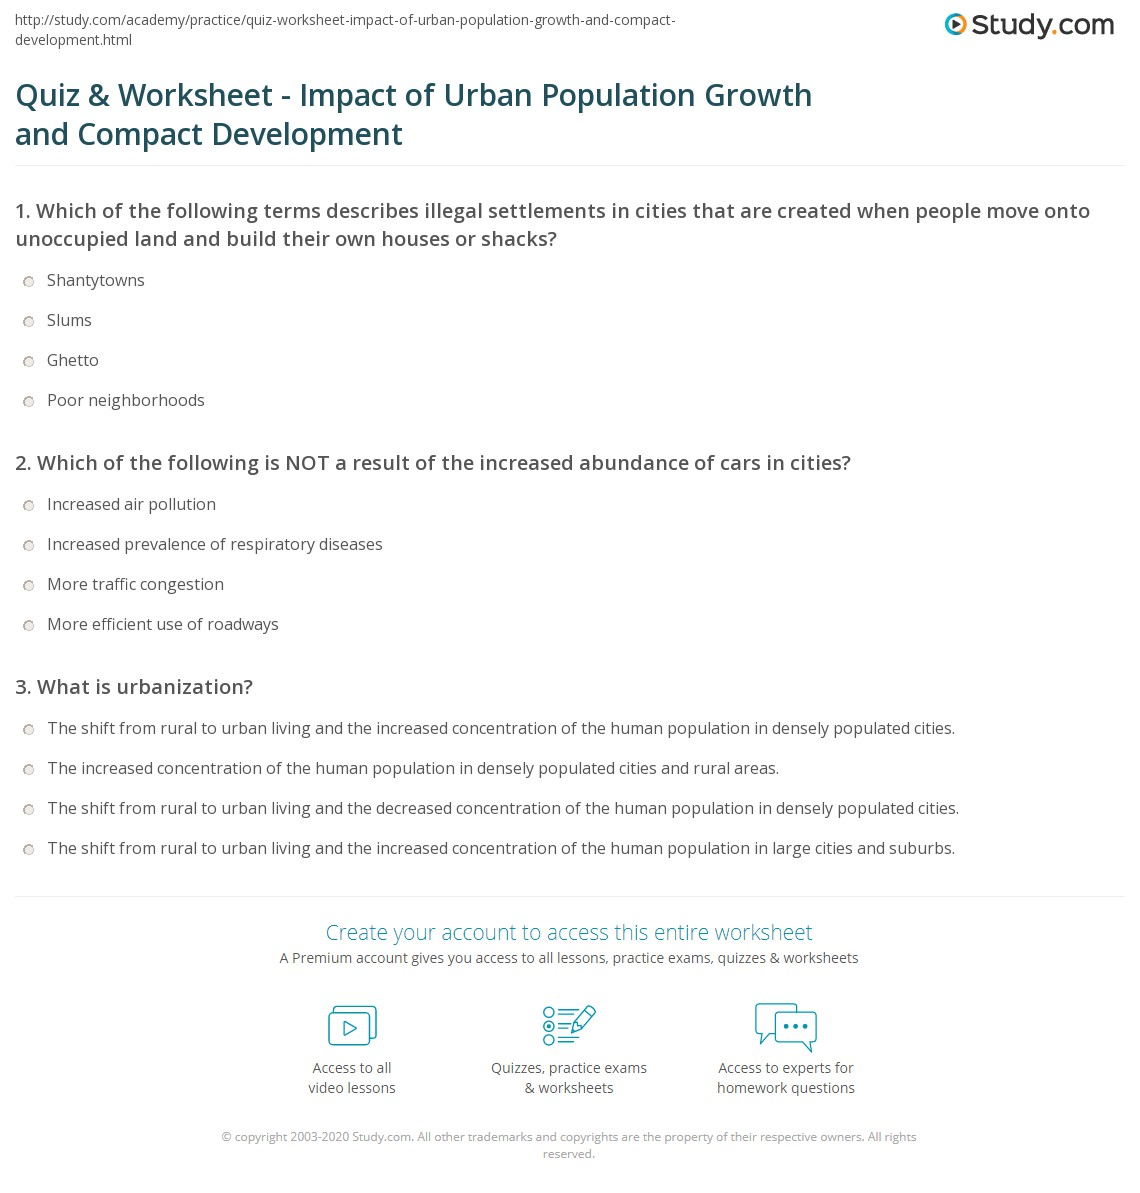 quiz worksheet impact of urban population growth and compact development. Black Bedroom Furniture Sets. Home Design Ideas